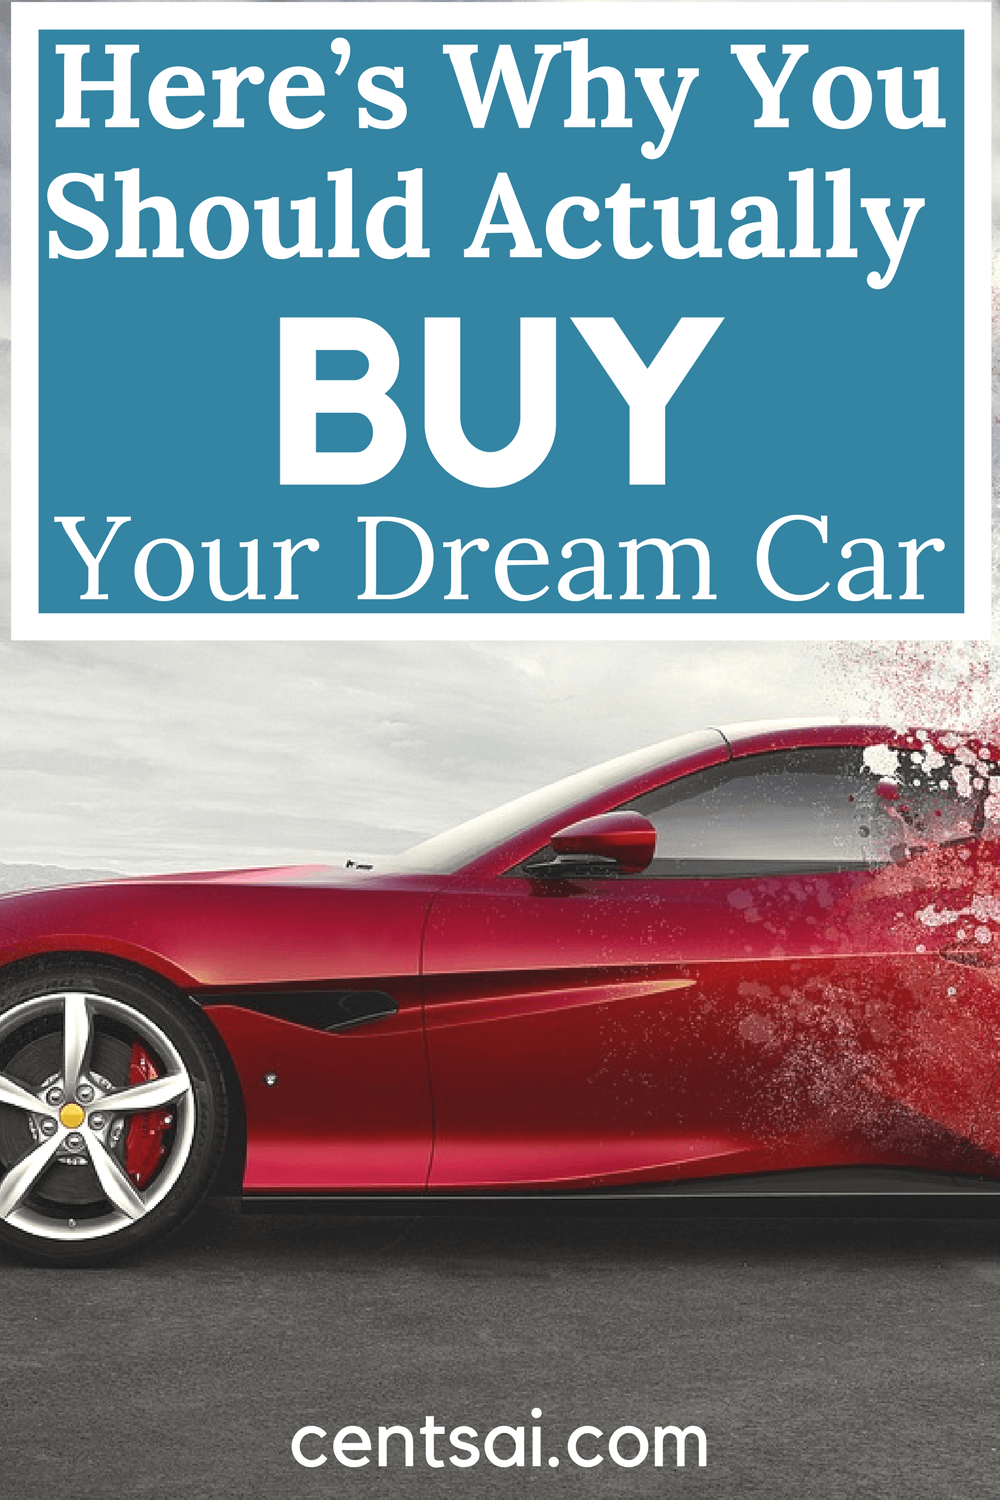 Here's Why You Should Actually Buy Your Dream Car